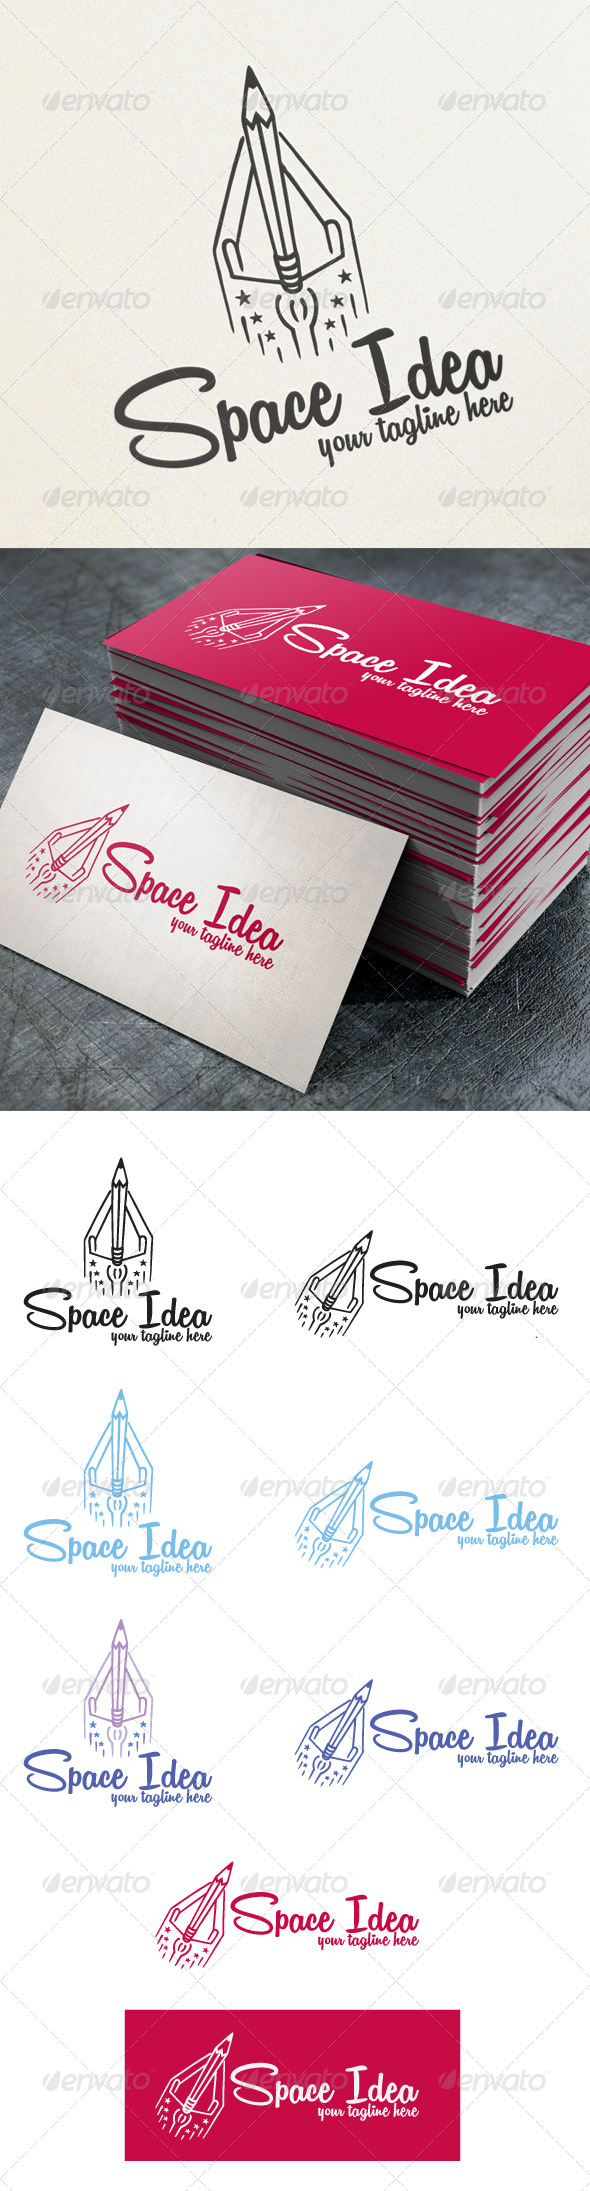 GraphicRiver Space Idea 4570313